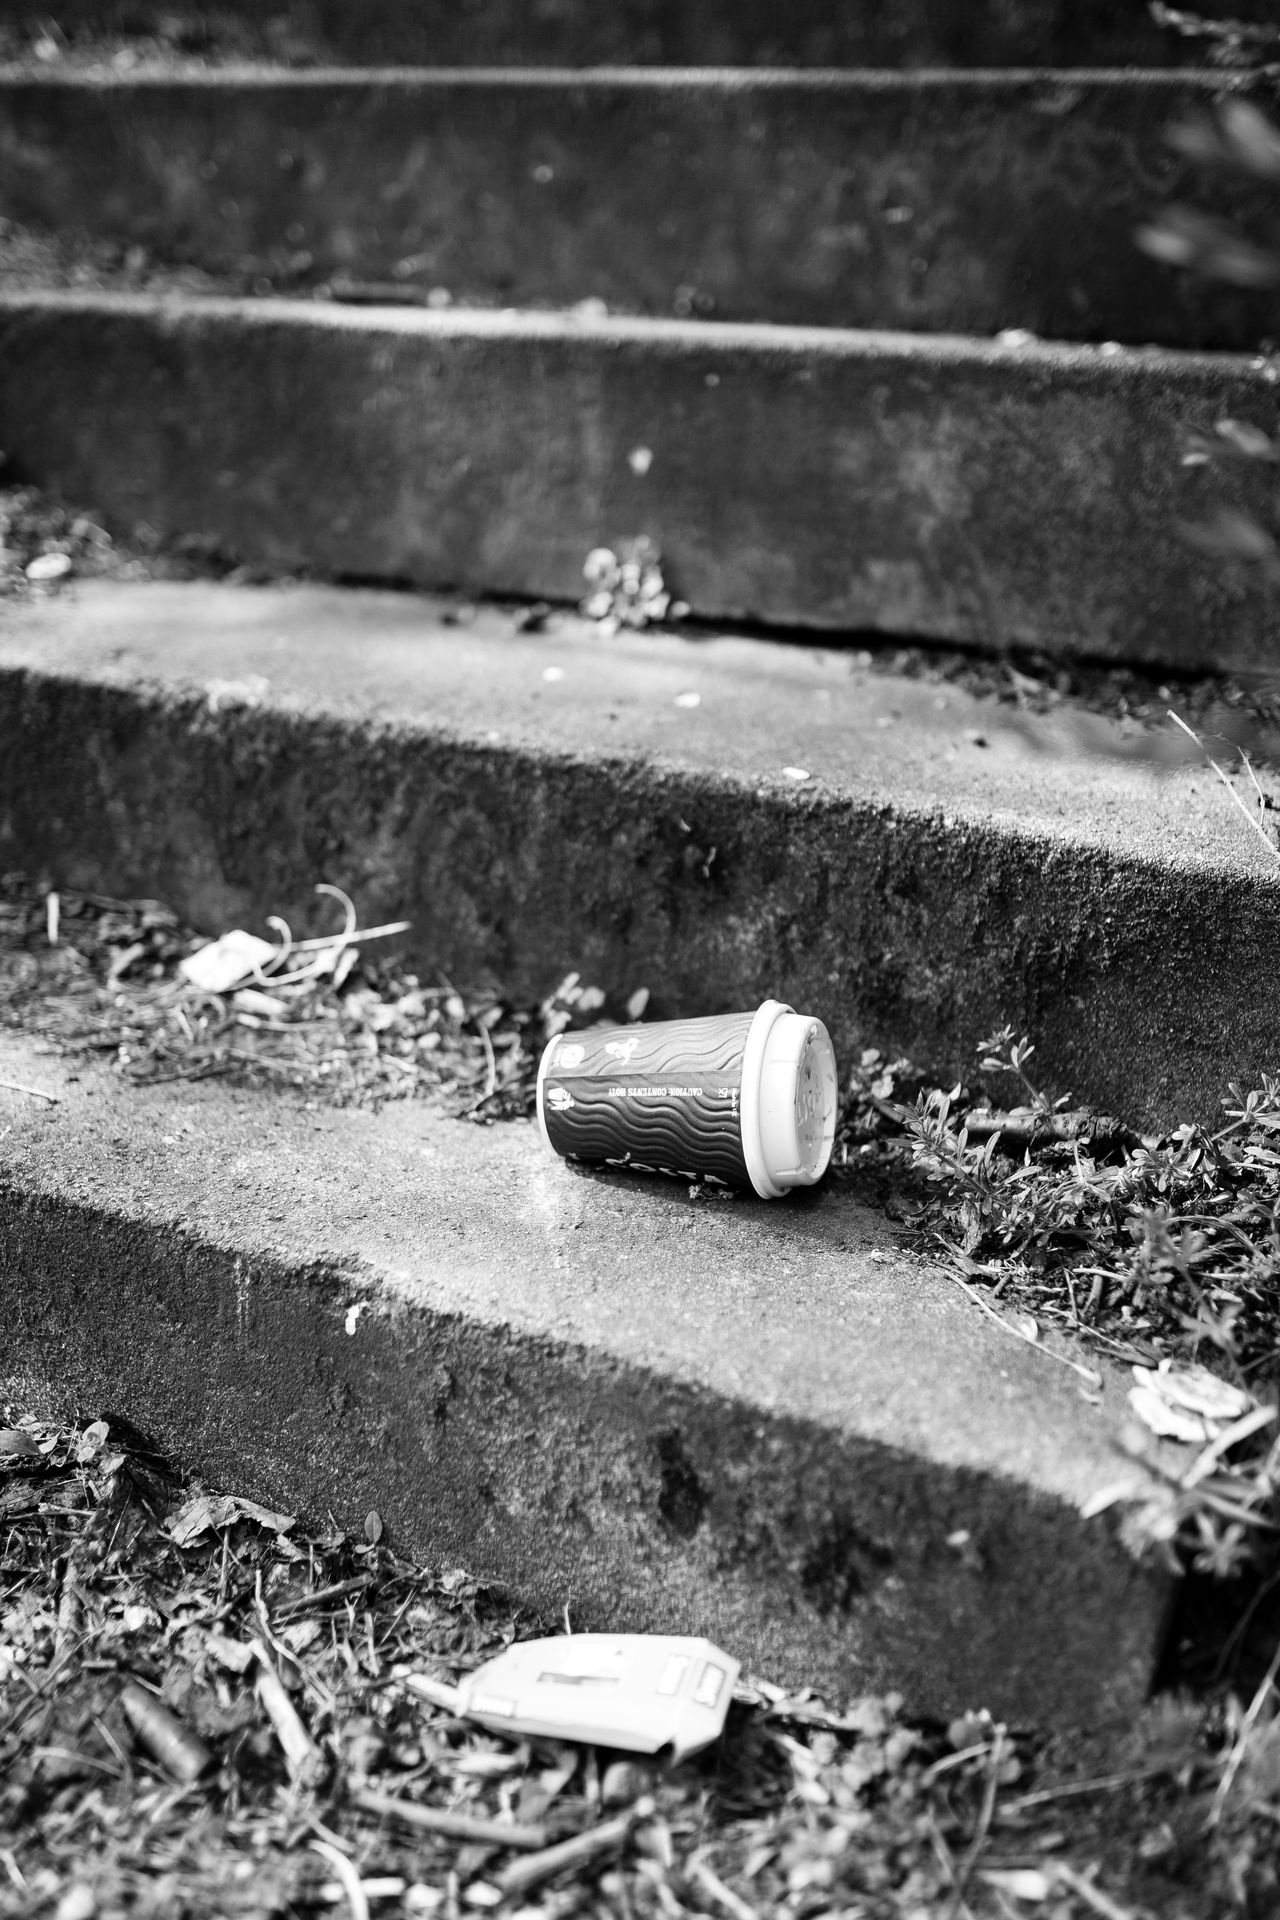 35mm Black And White Black And White Photography Blackandwhite Canon Canonphotography City Close-up Coffee Cup Day Dirt Discarded Grime Monochrome No People Outdoors Rubbish Sigma Stairs Steps Still Life StillLifePhotography Urban Urban Landscape Waste